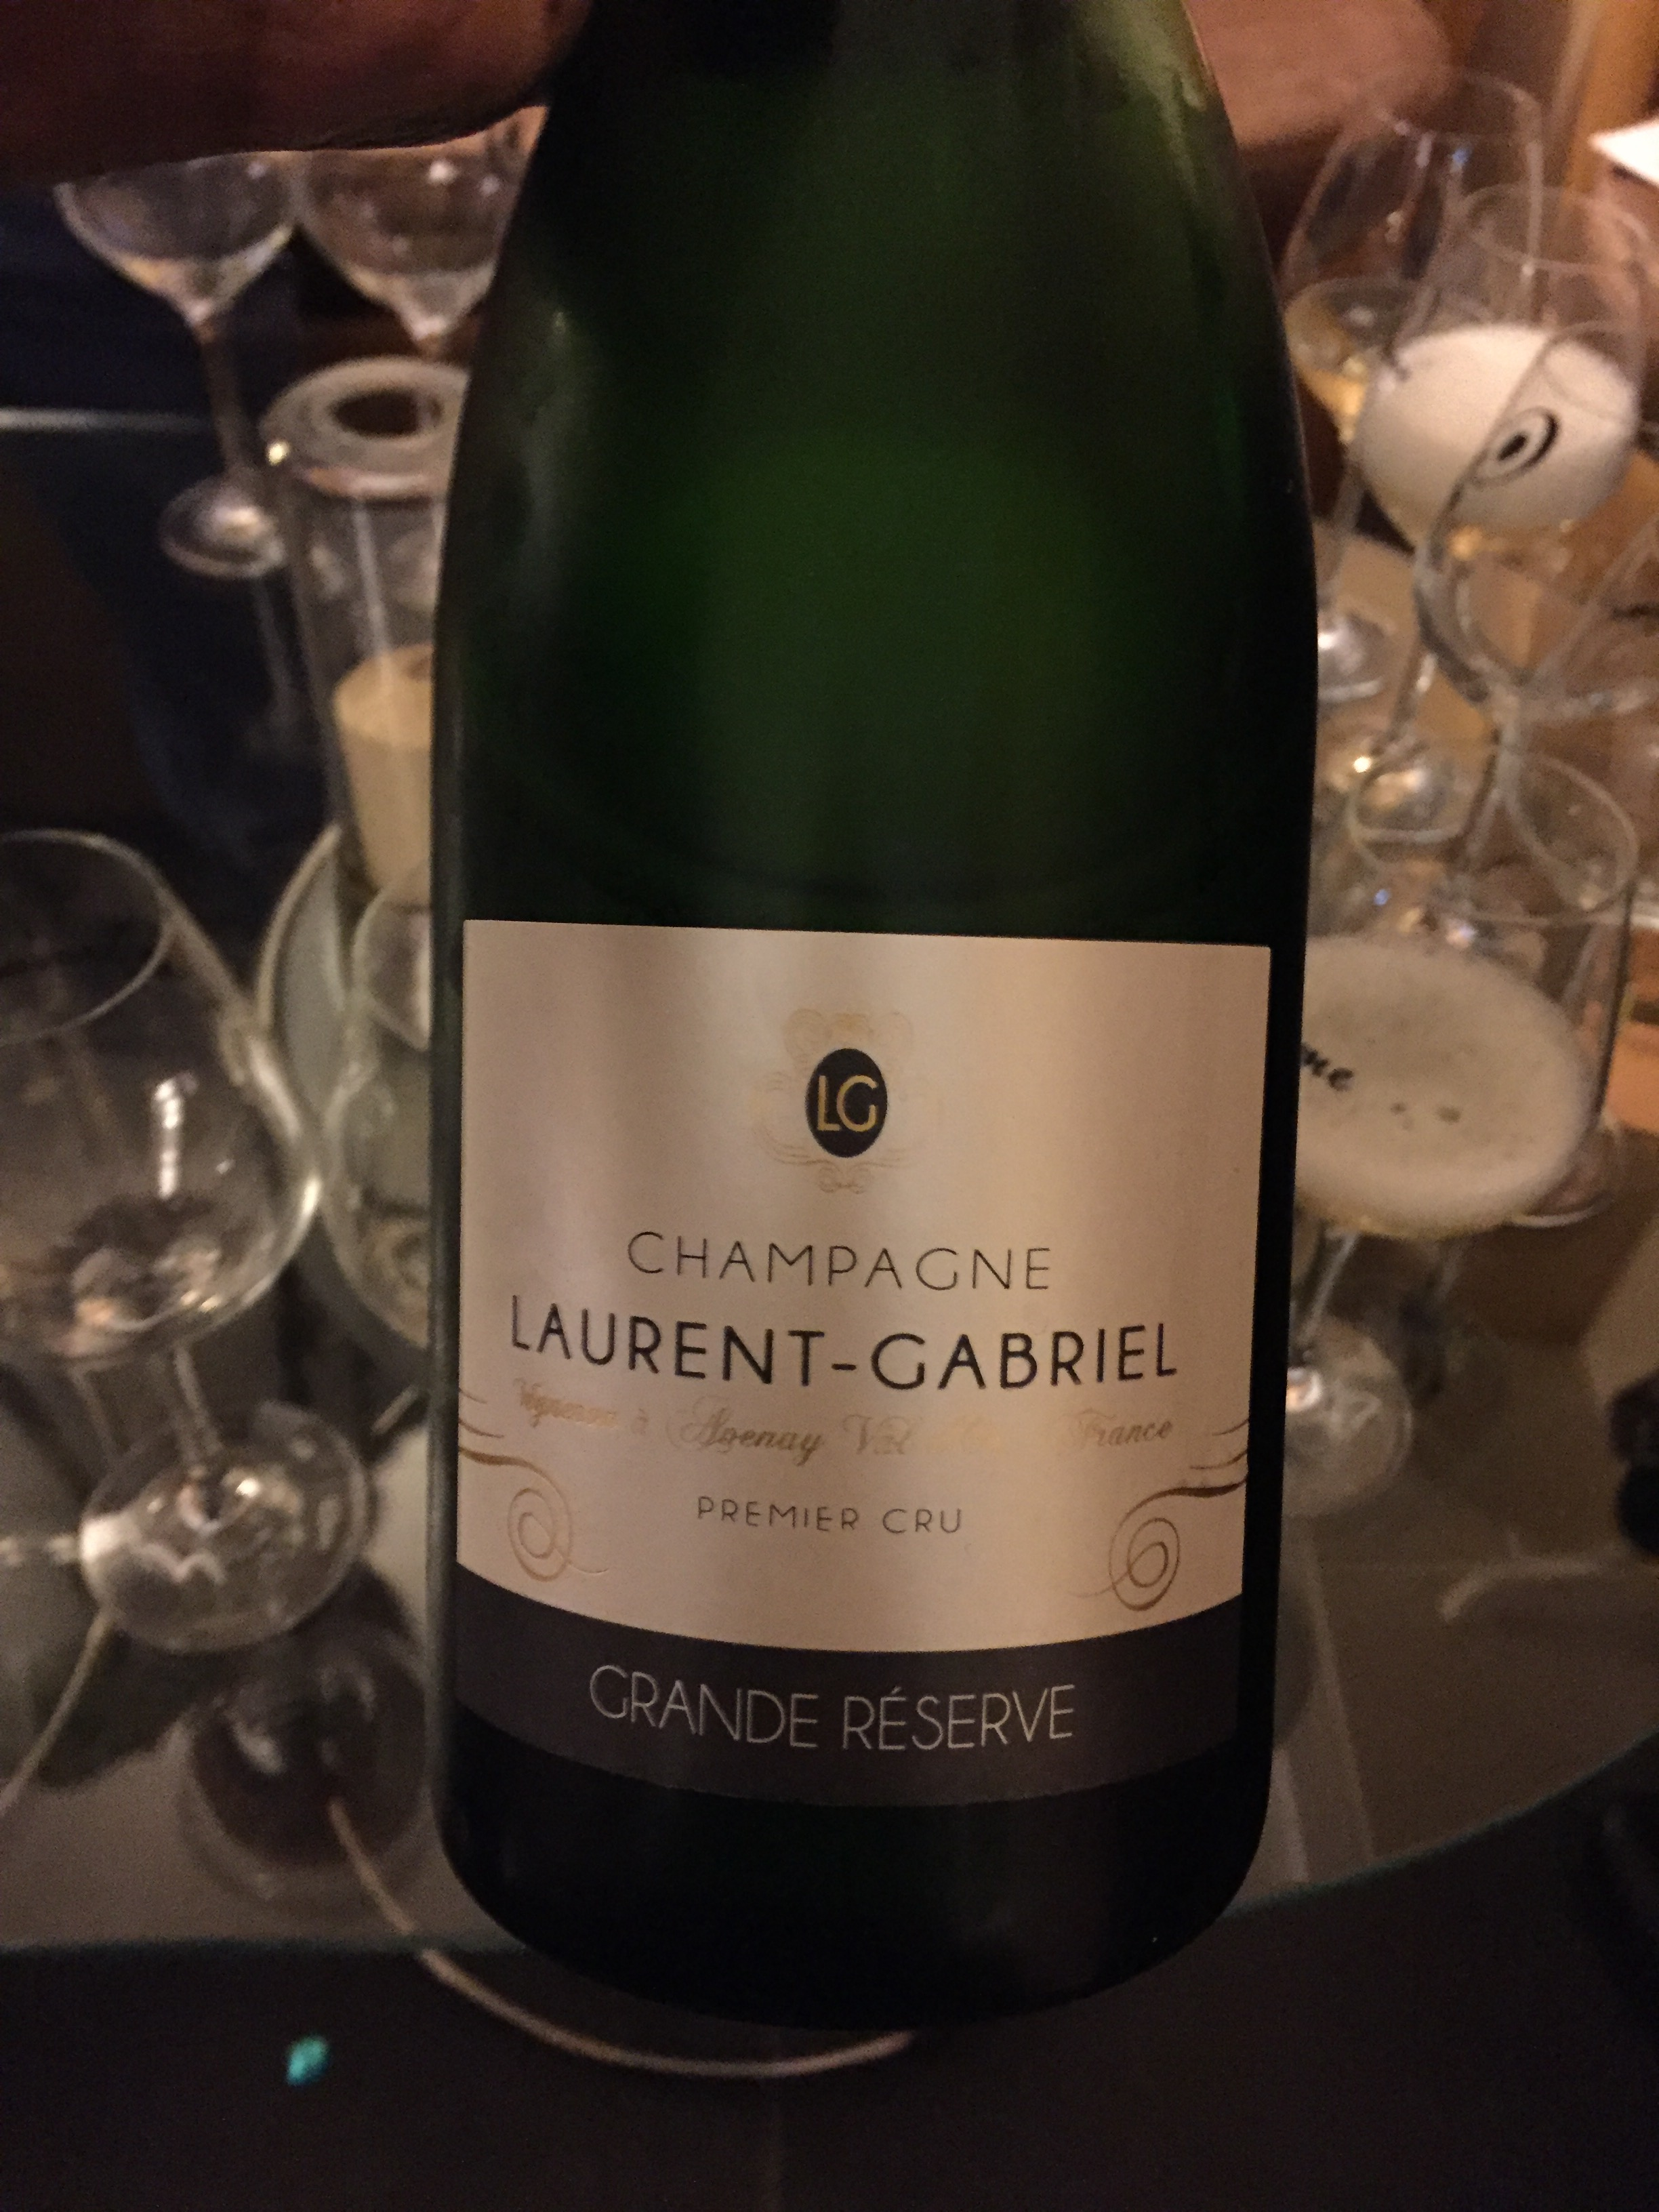 Small grower champagne for tasting